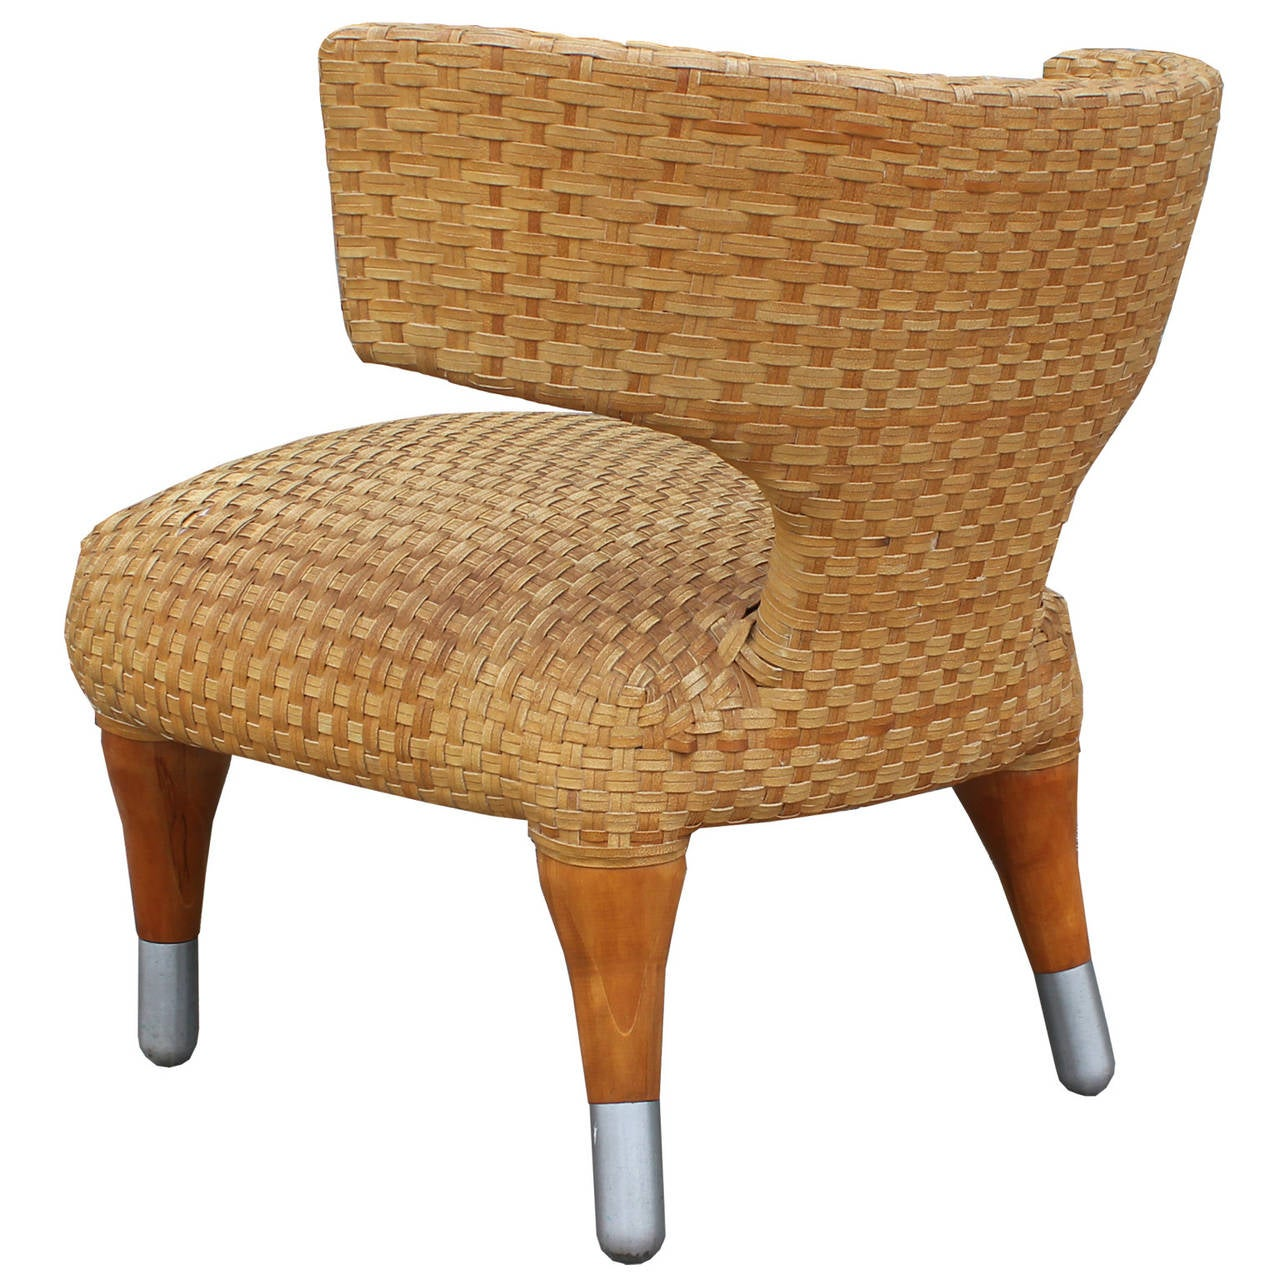 Woven Leather Chair Klismos Side Chair In Woven Leather At 1stdibs